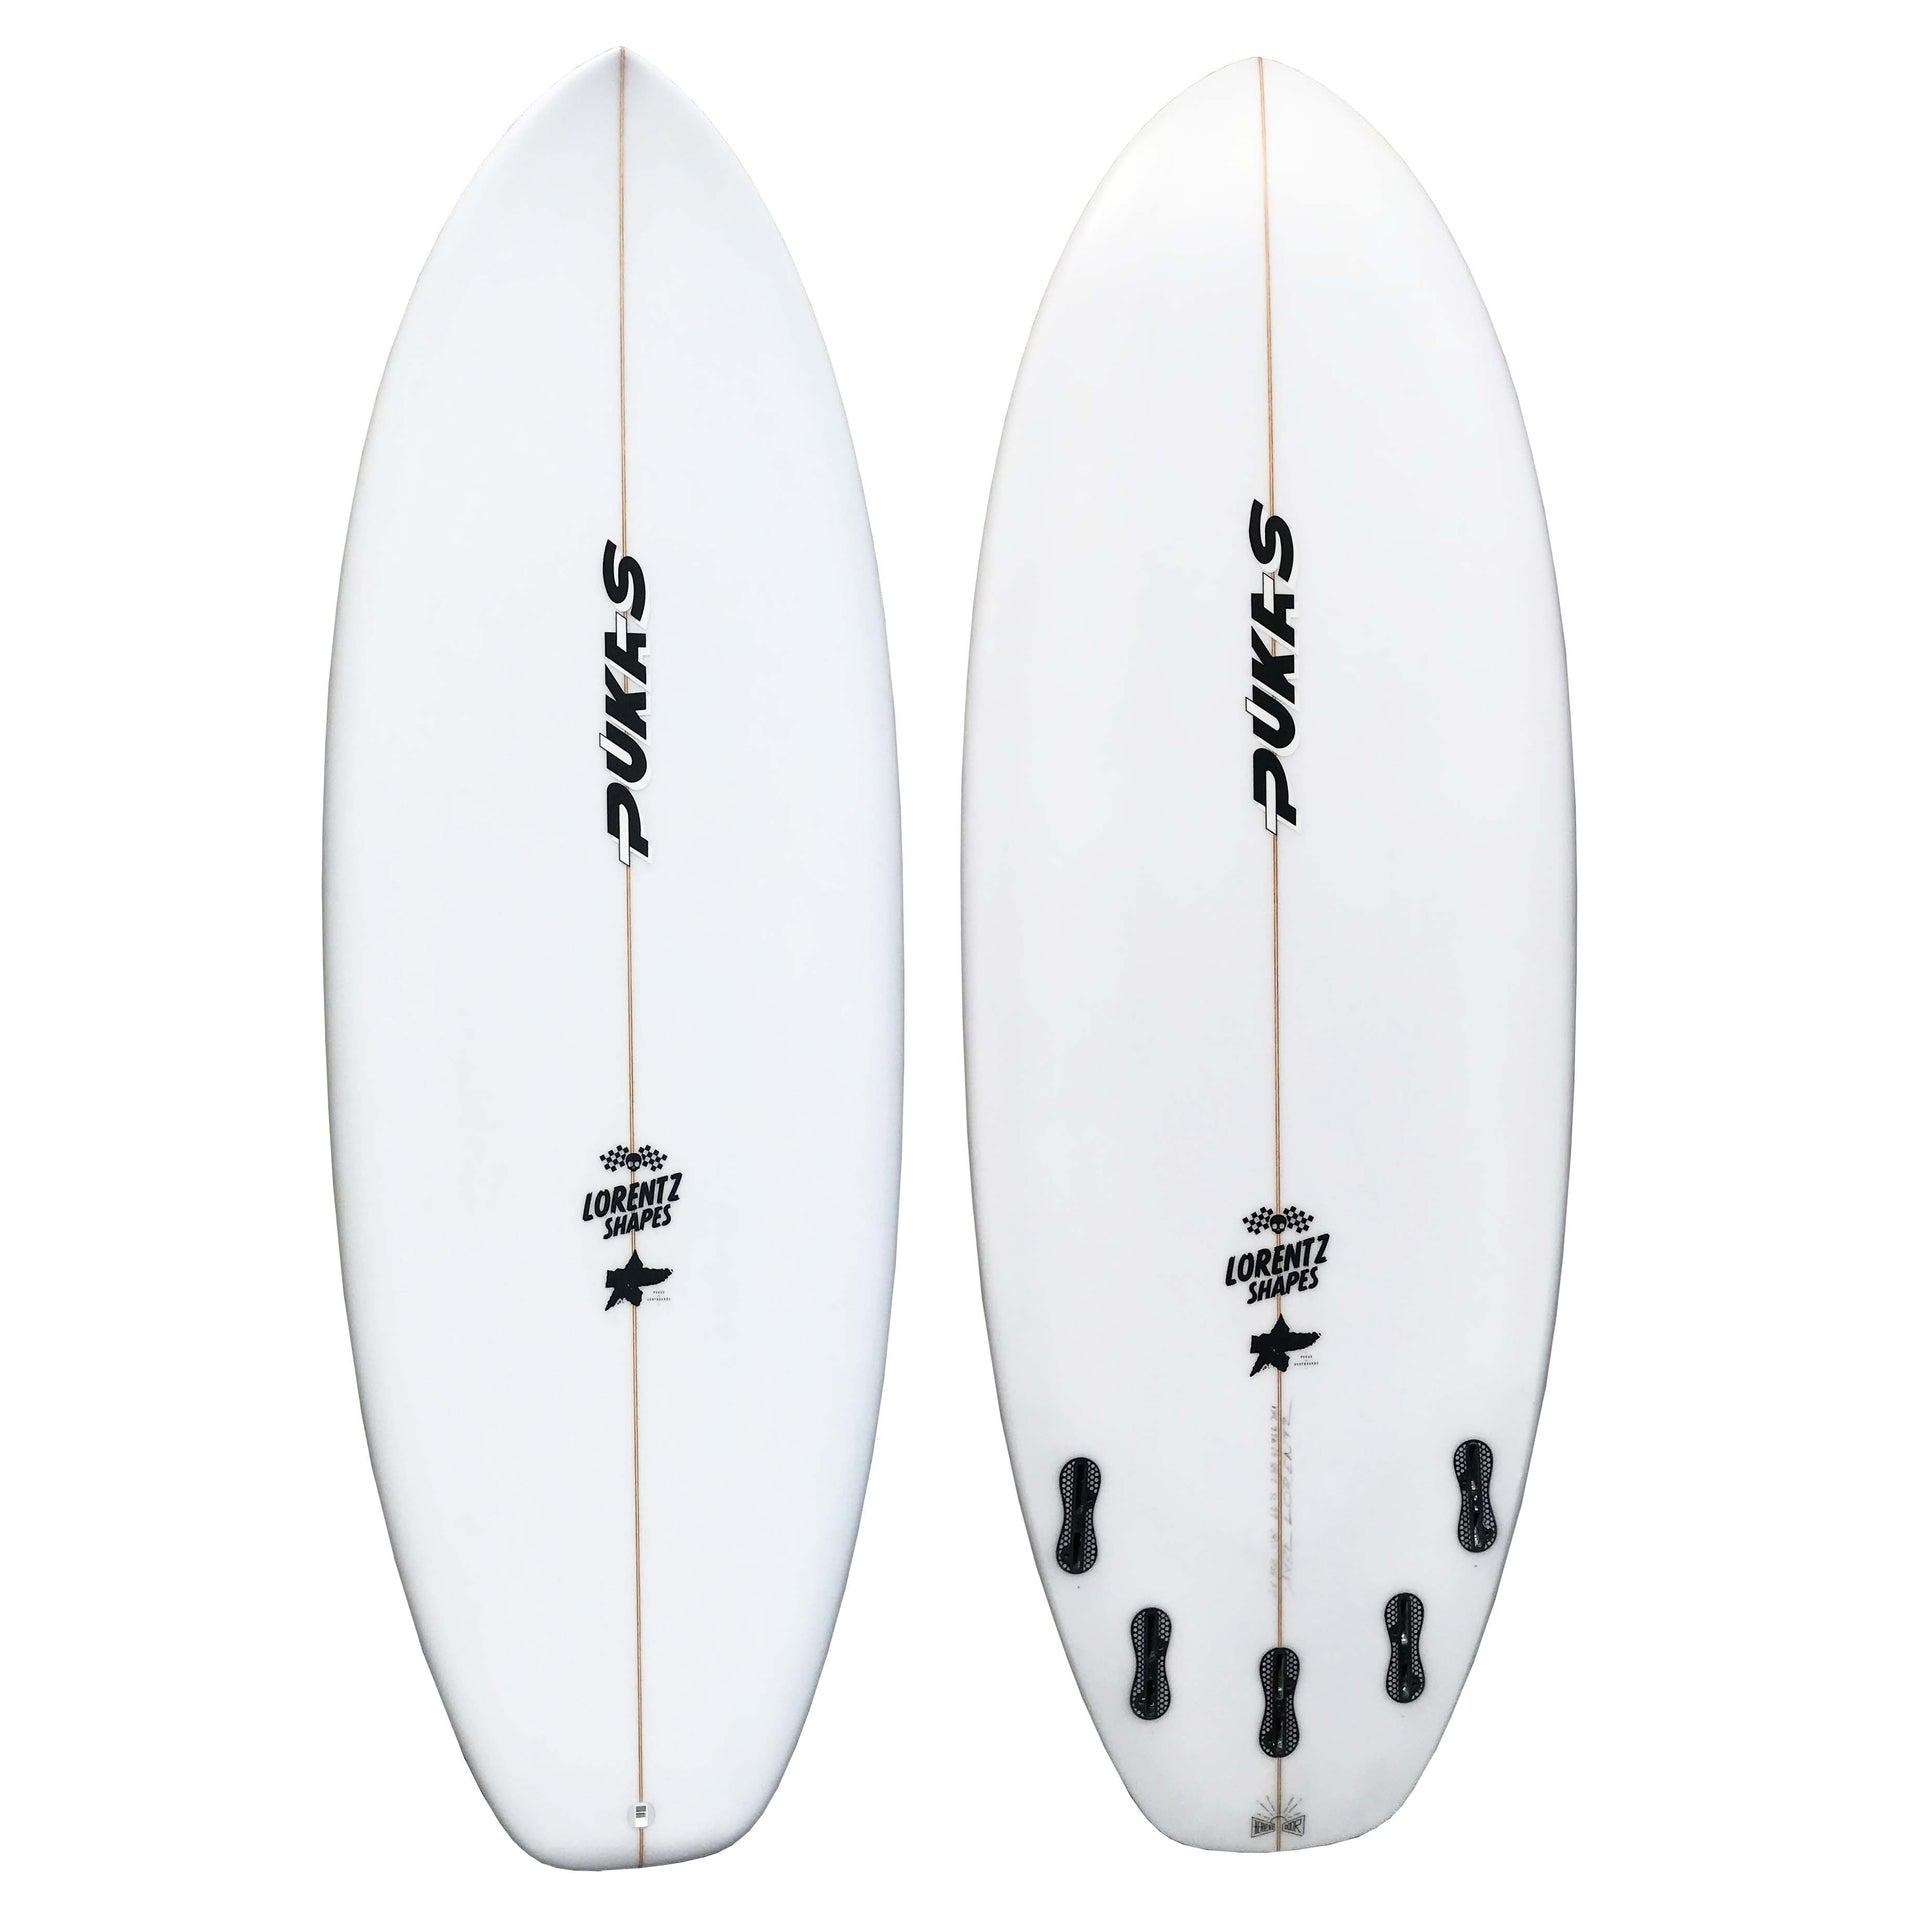 PUKAS SURFBOARD 5.08 HEAVEN'S DOOR SQ FCS2 5 FIN